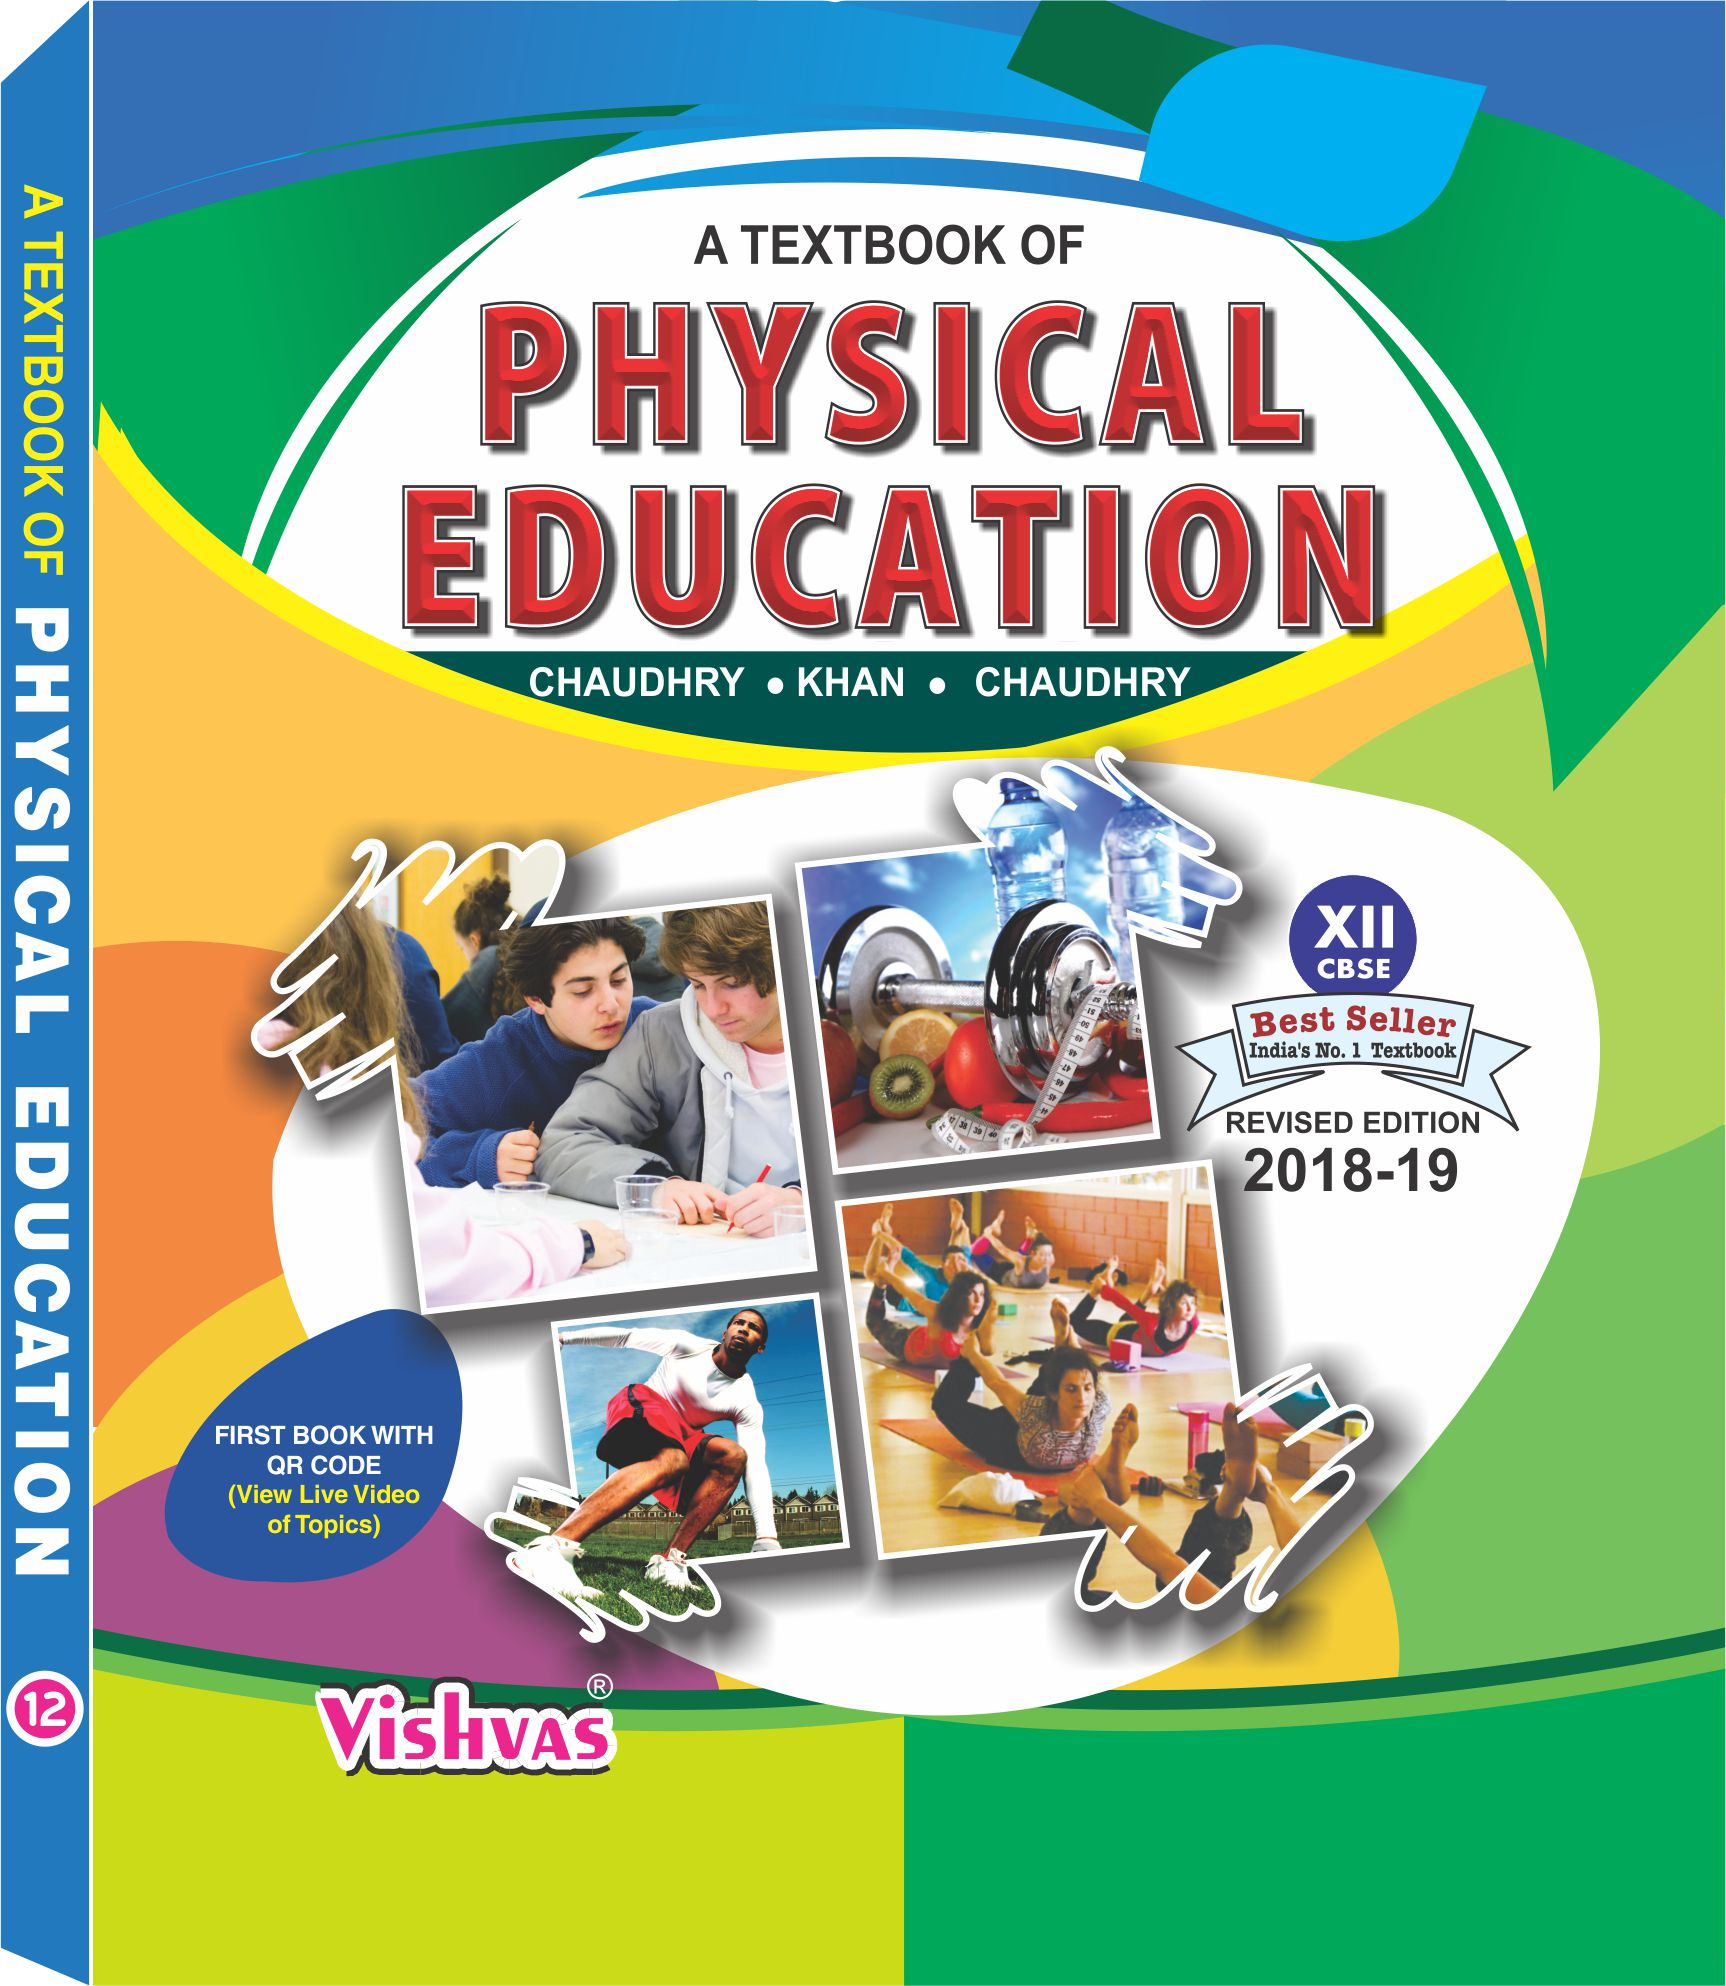 Cbse 2018 physical education class xii english medium textbook physical education 102 cbse 2018 19 malvernweather